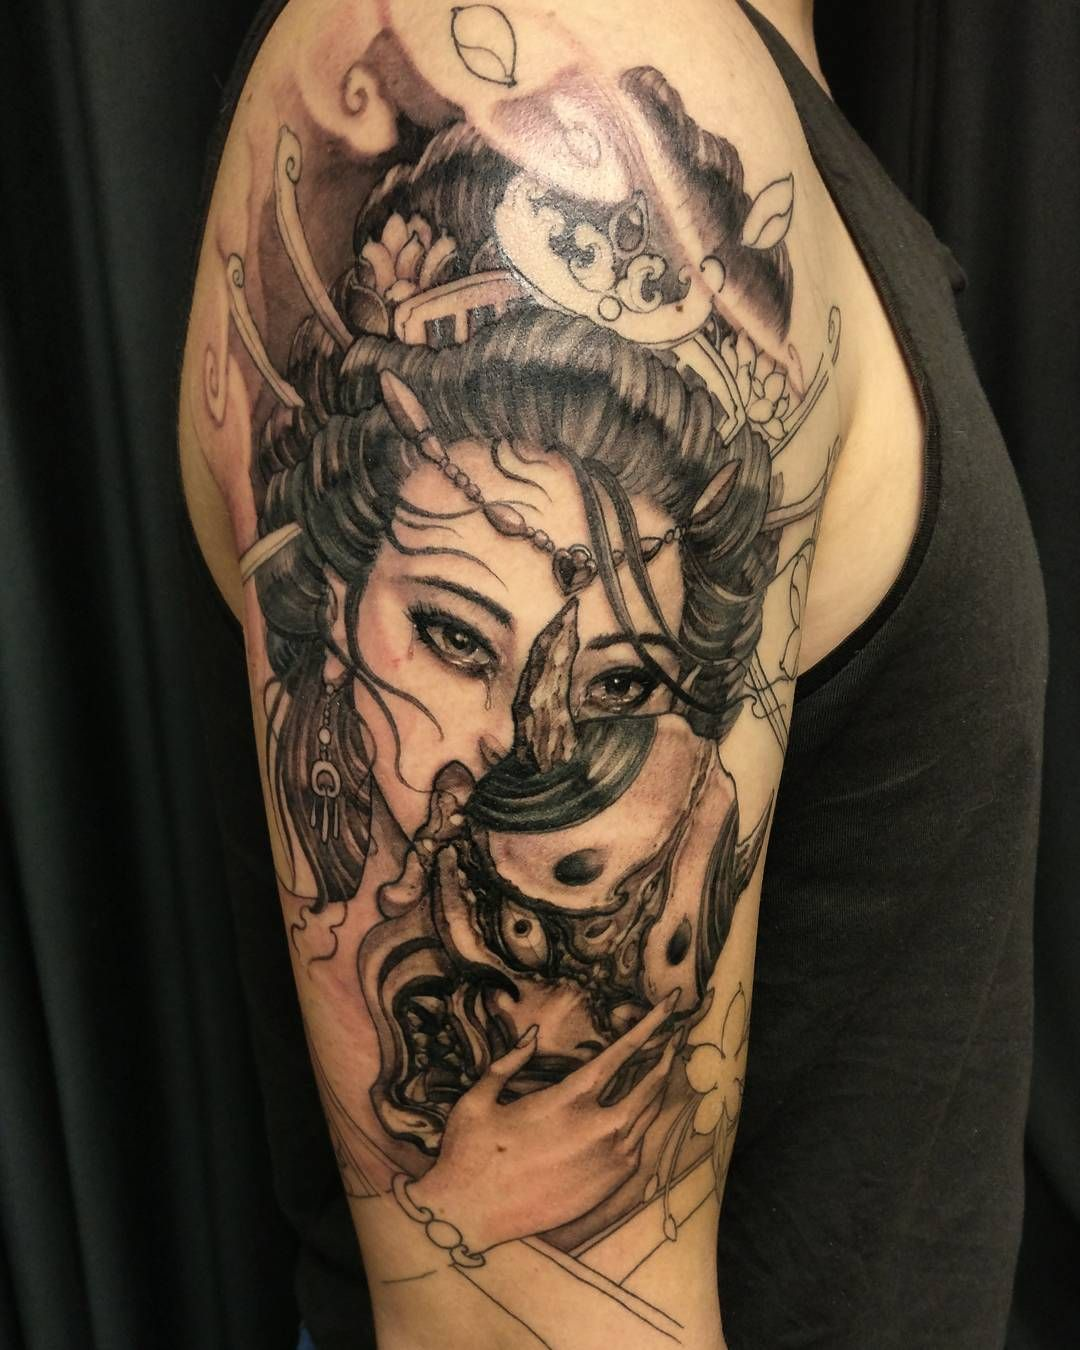 David Hoang Geisha Hannya Irezumi Tattoo Art Tattoos